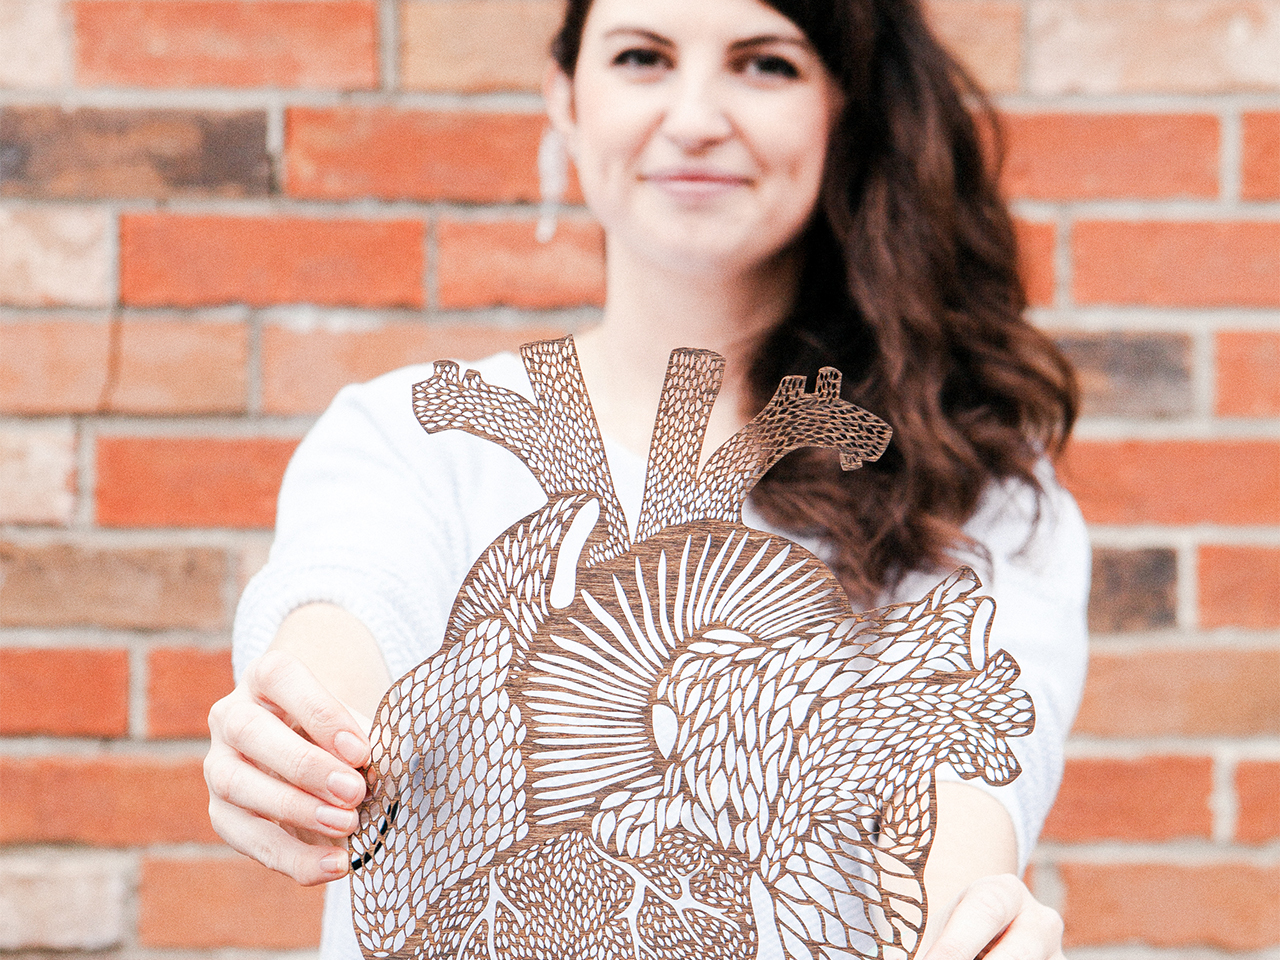 Canadian artist and founder of Light + Paper showcasing one of her pieces to illustrate an article on female artists in Canada.